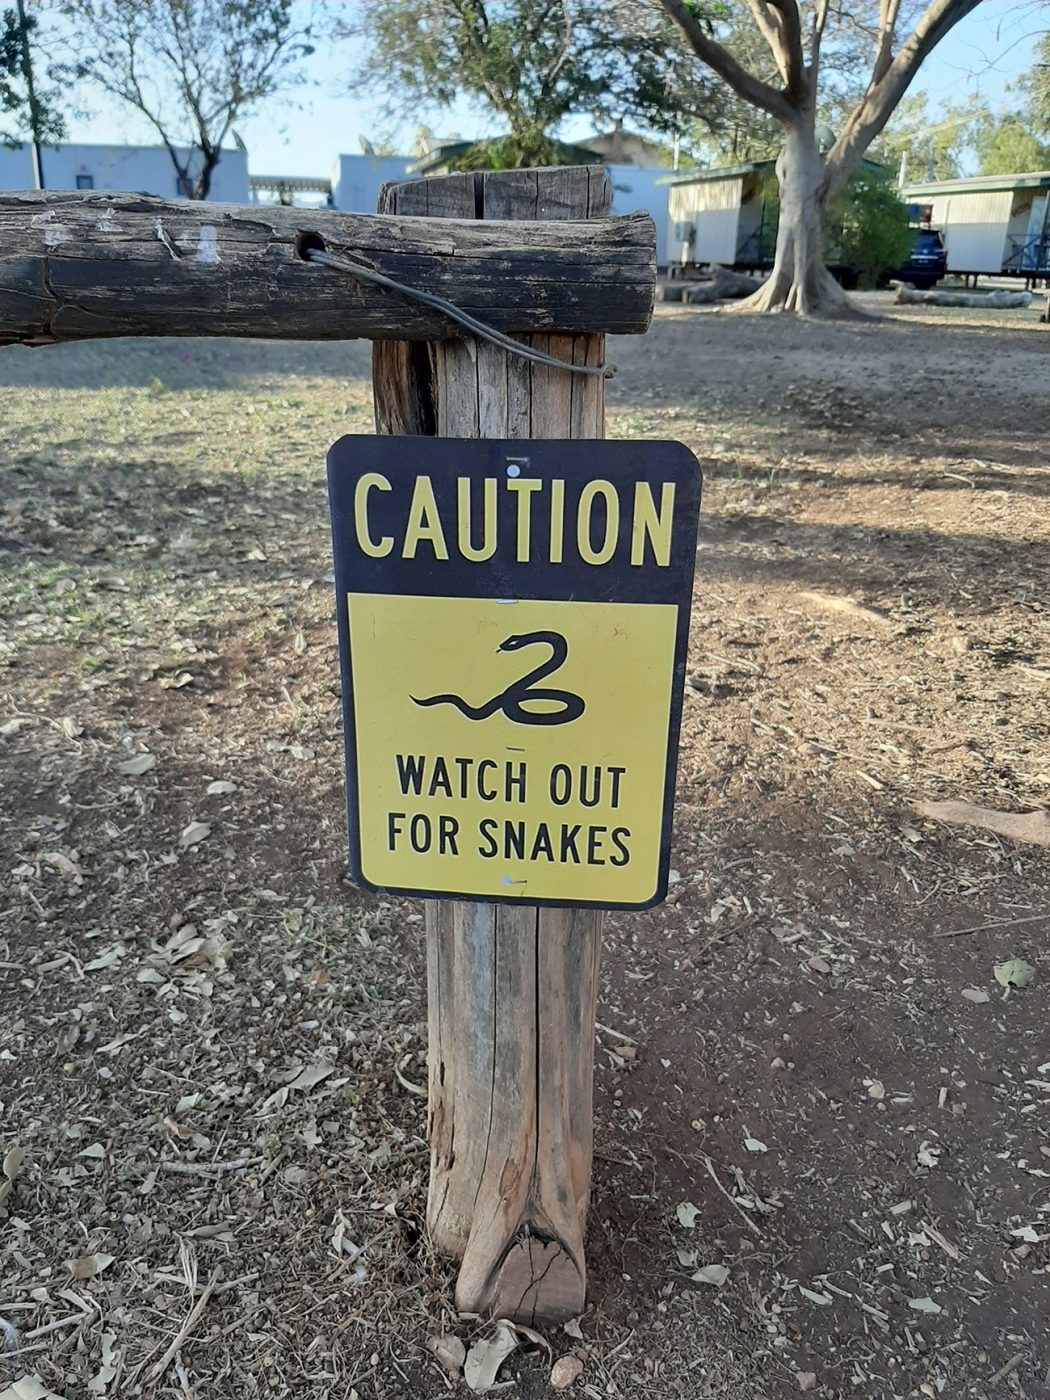 Caution watch out for snakes